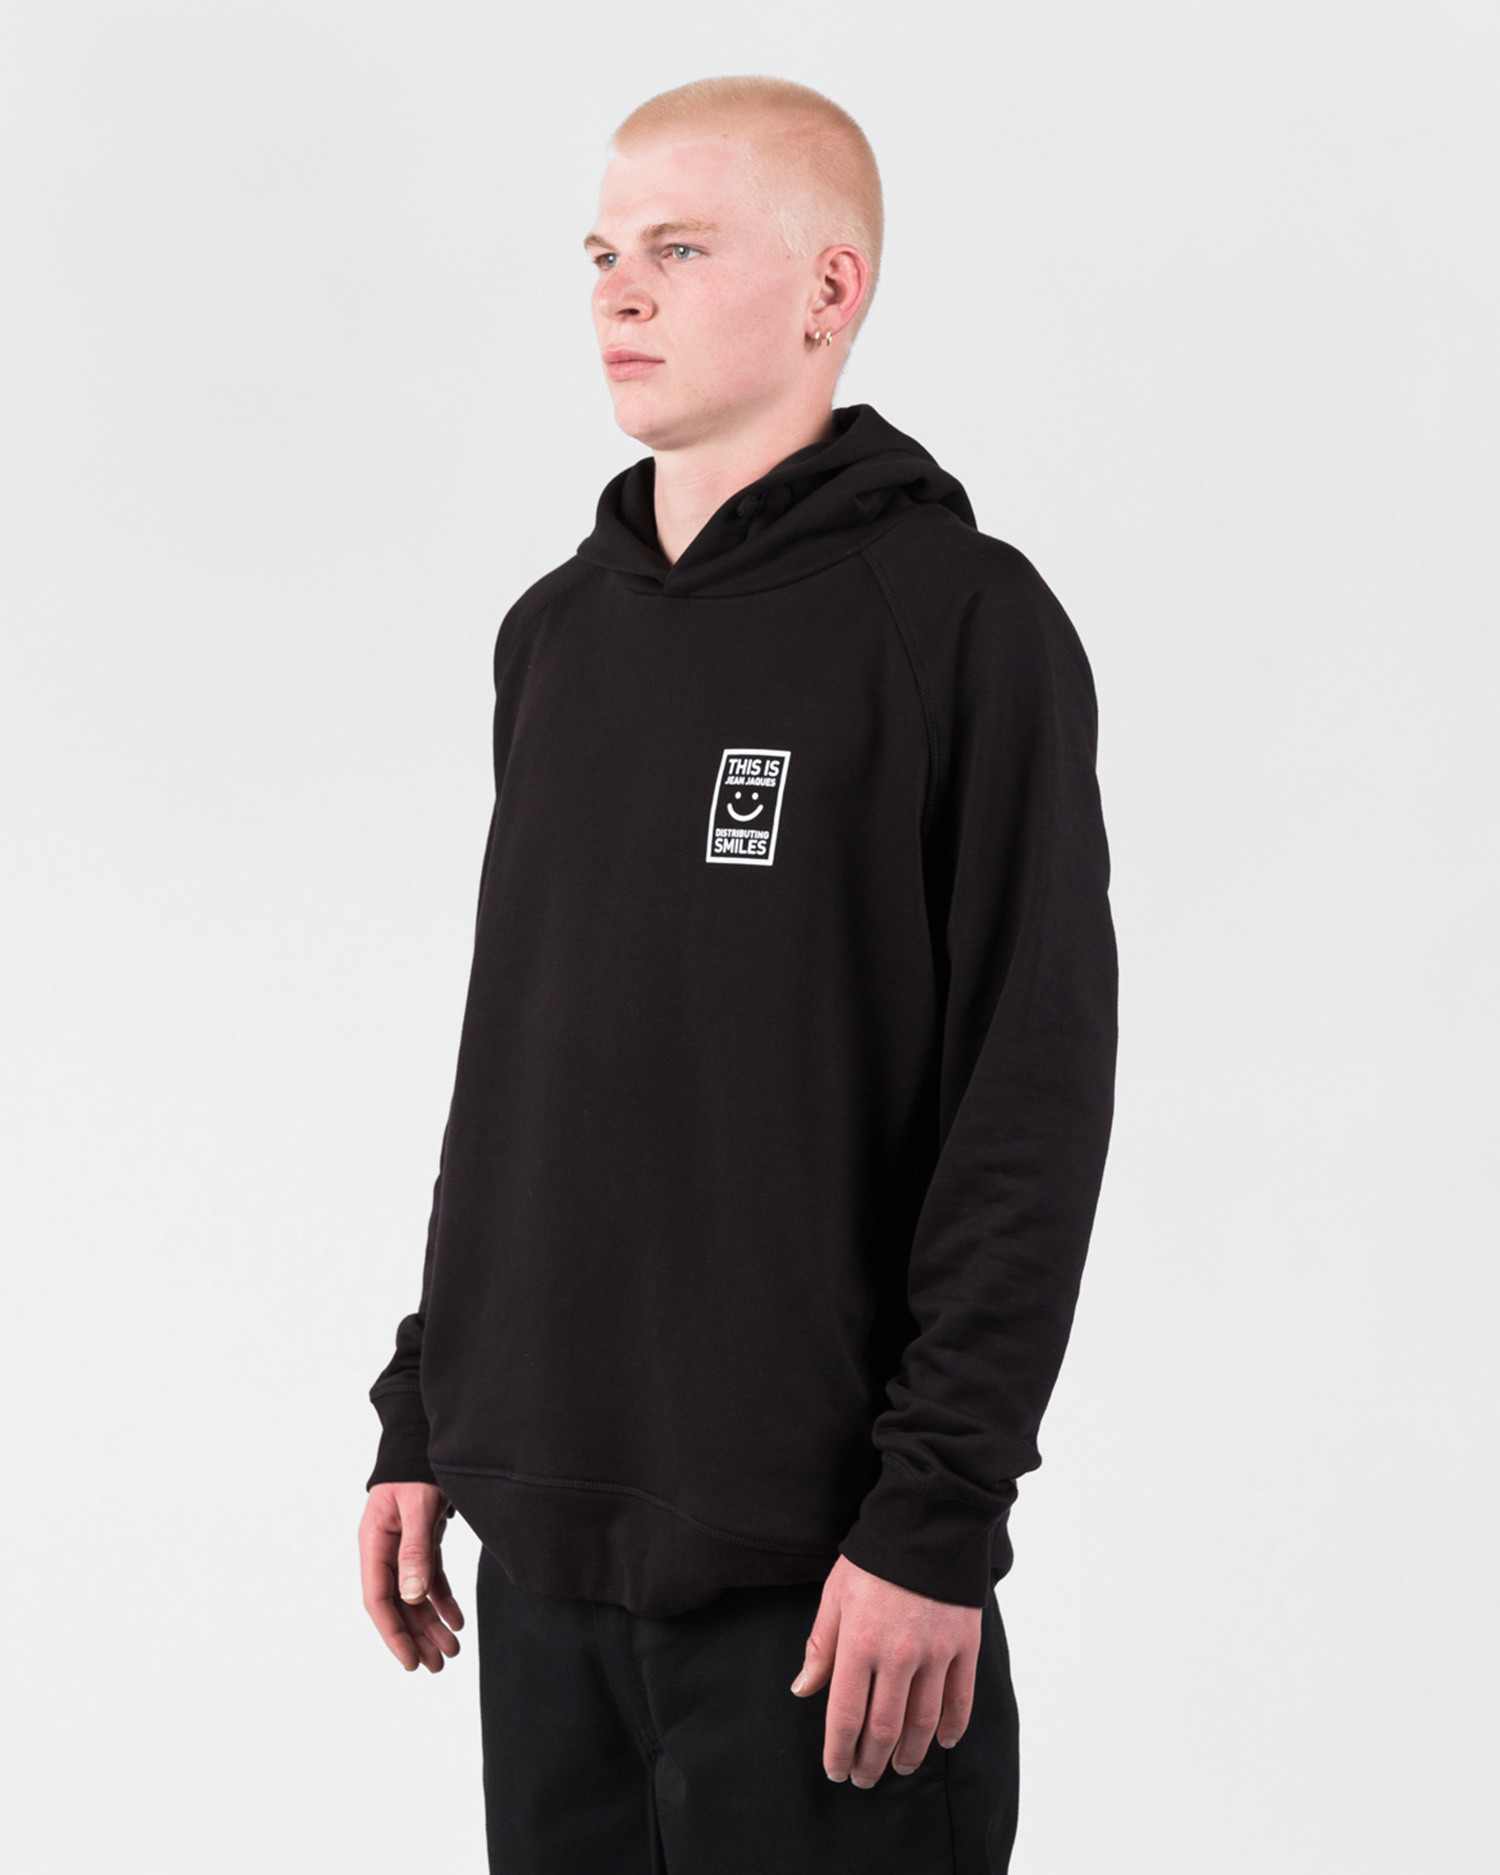 Jean Jaques Distributing Smiles Hoodie Black